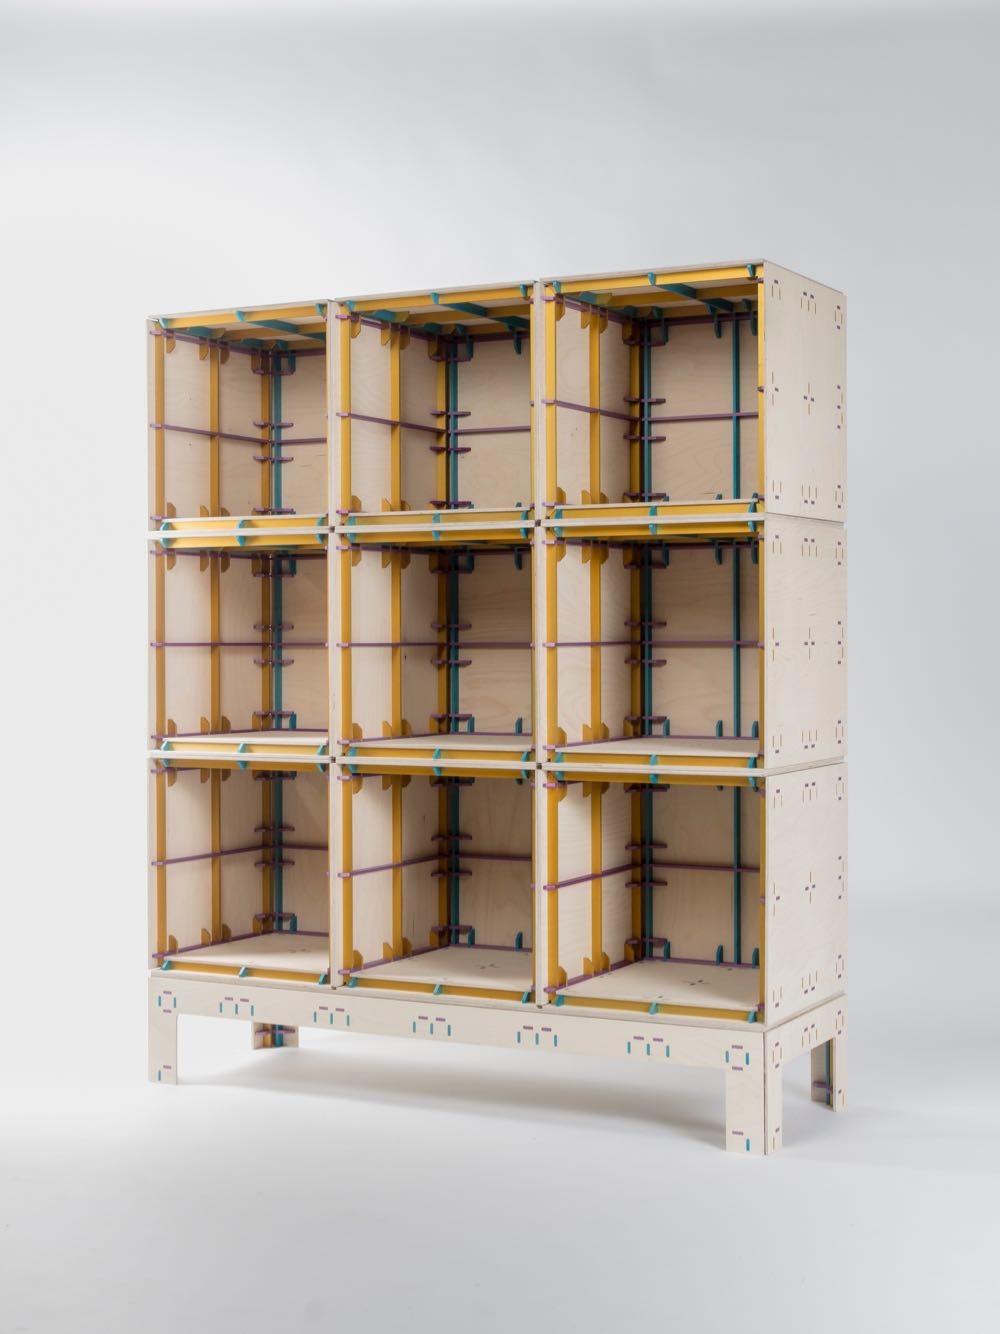 The 'Wrong Colour Furniture System' by Minale Maeda (2013) is made from laser cut sheets of plywood joined by anodised aluminium components that not only allow the material cladding material to come together but also provides bracing.